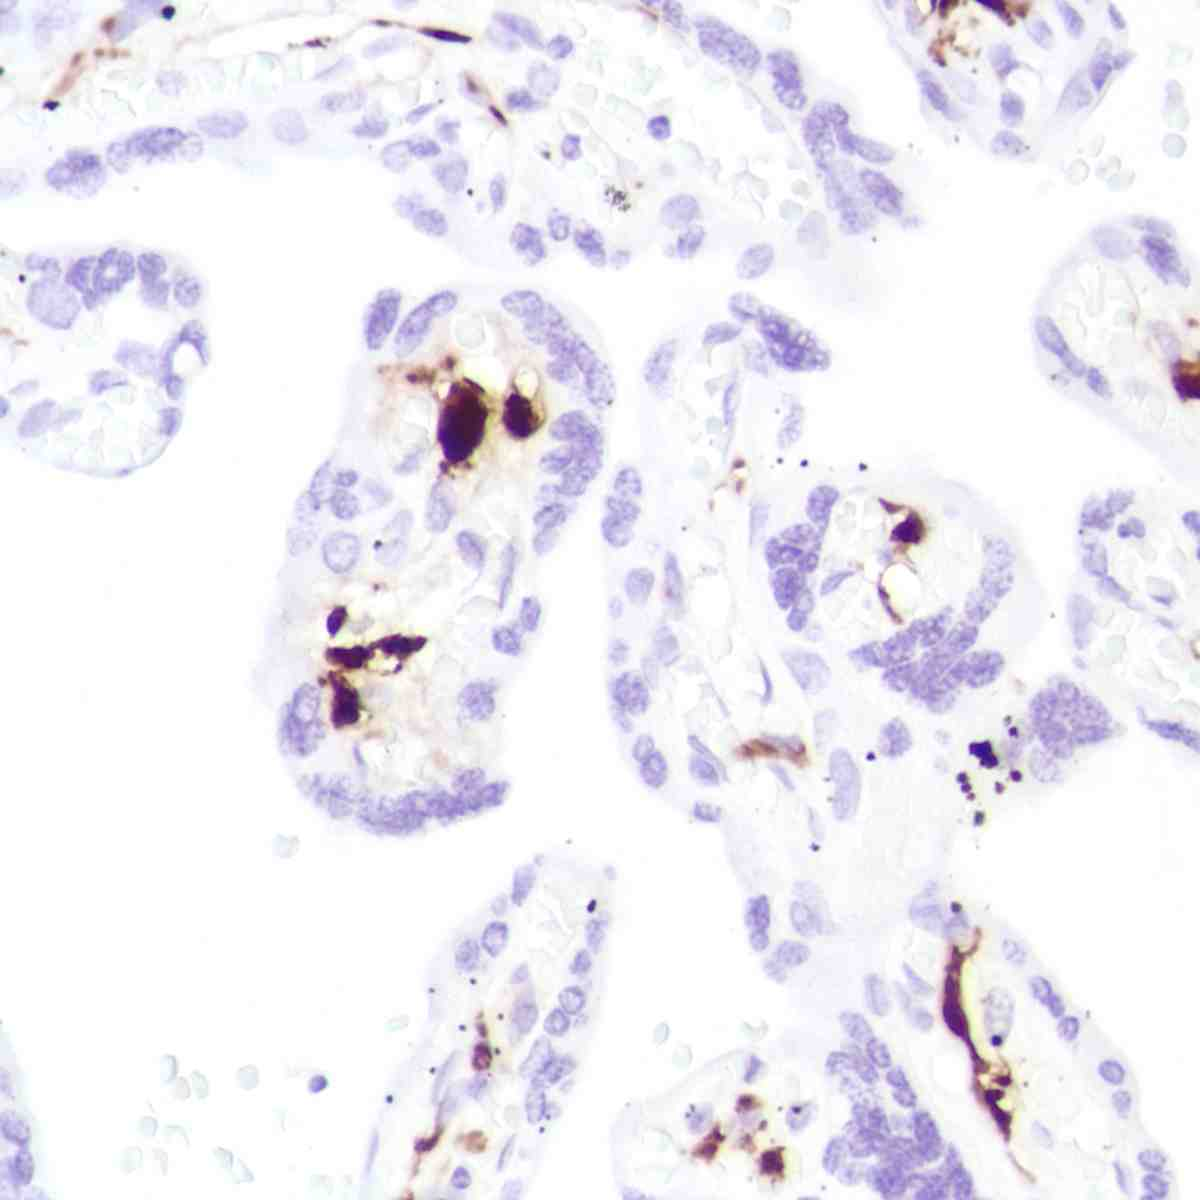 Human placenta stained with anti-coagulation factor XIIIa antibody